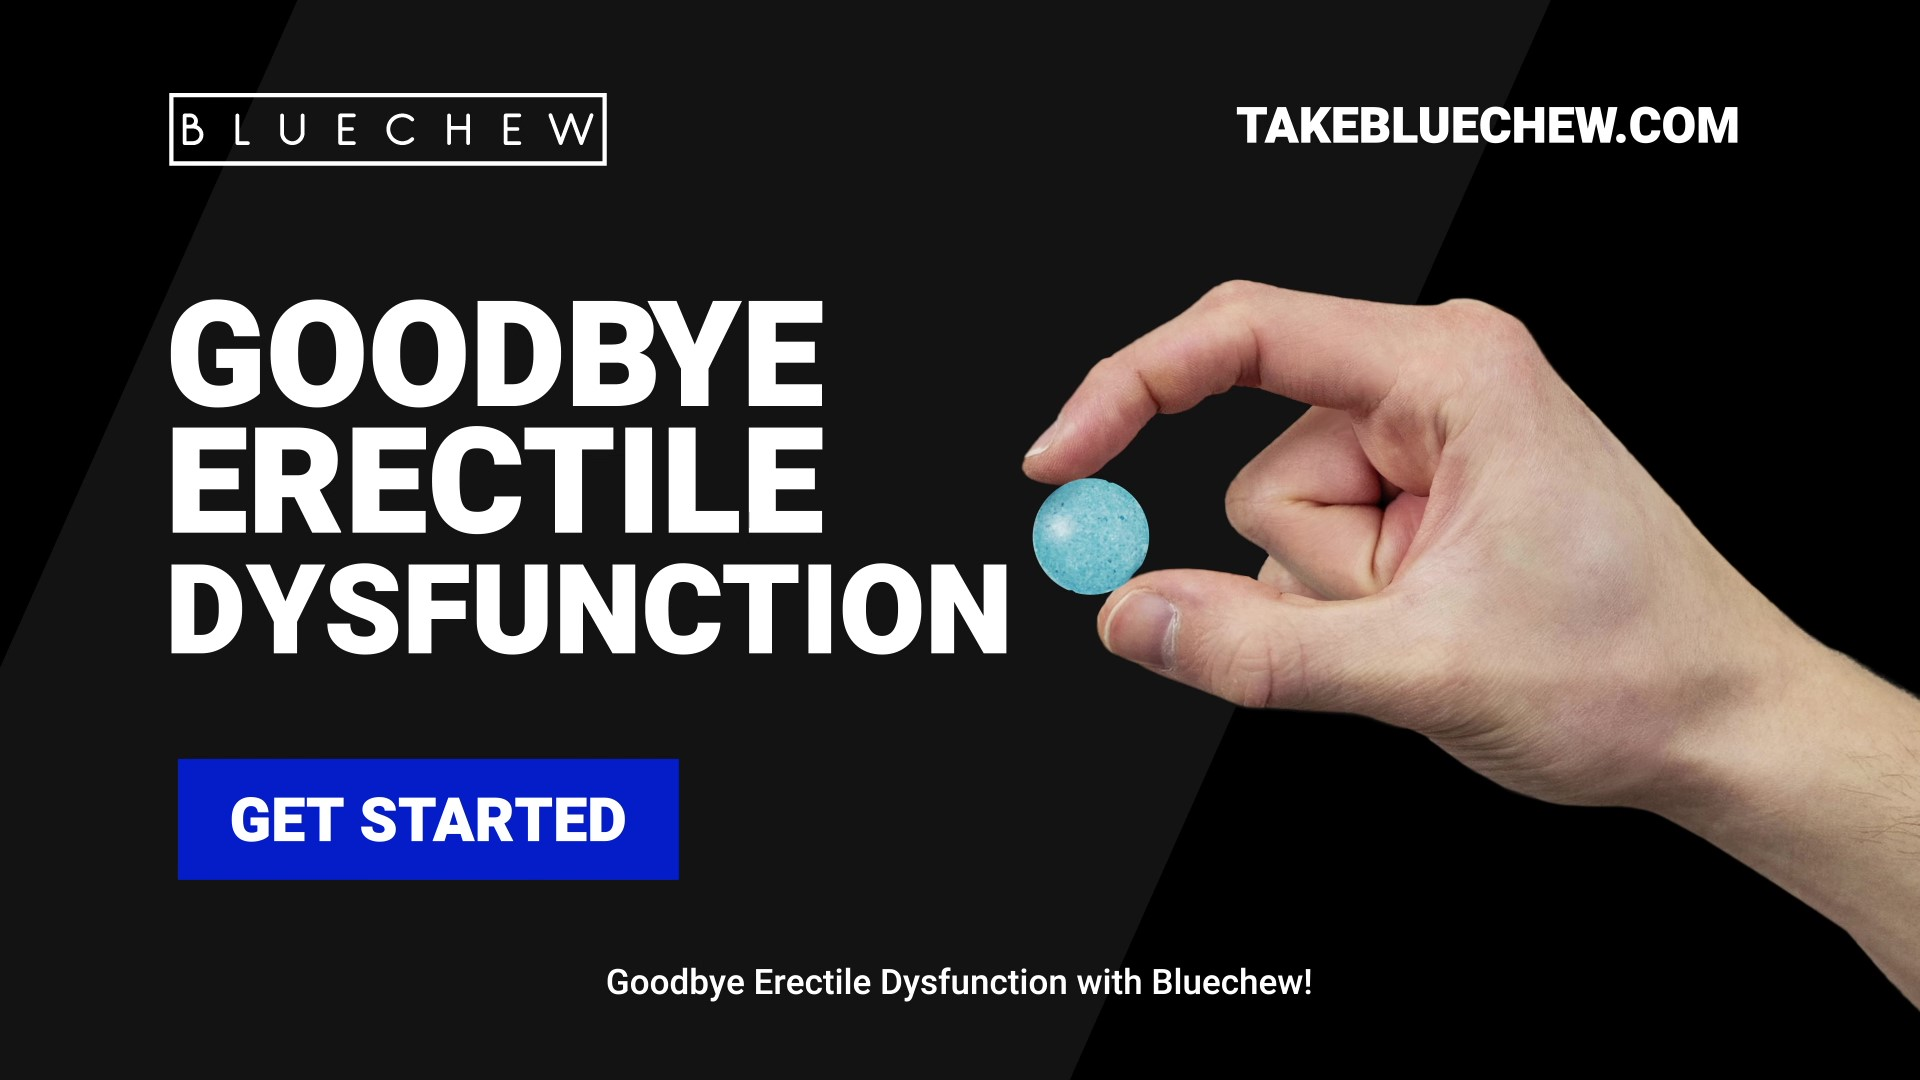 GoodBye Erectile Dysfunction